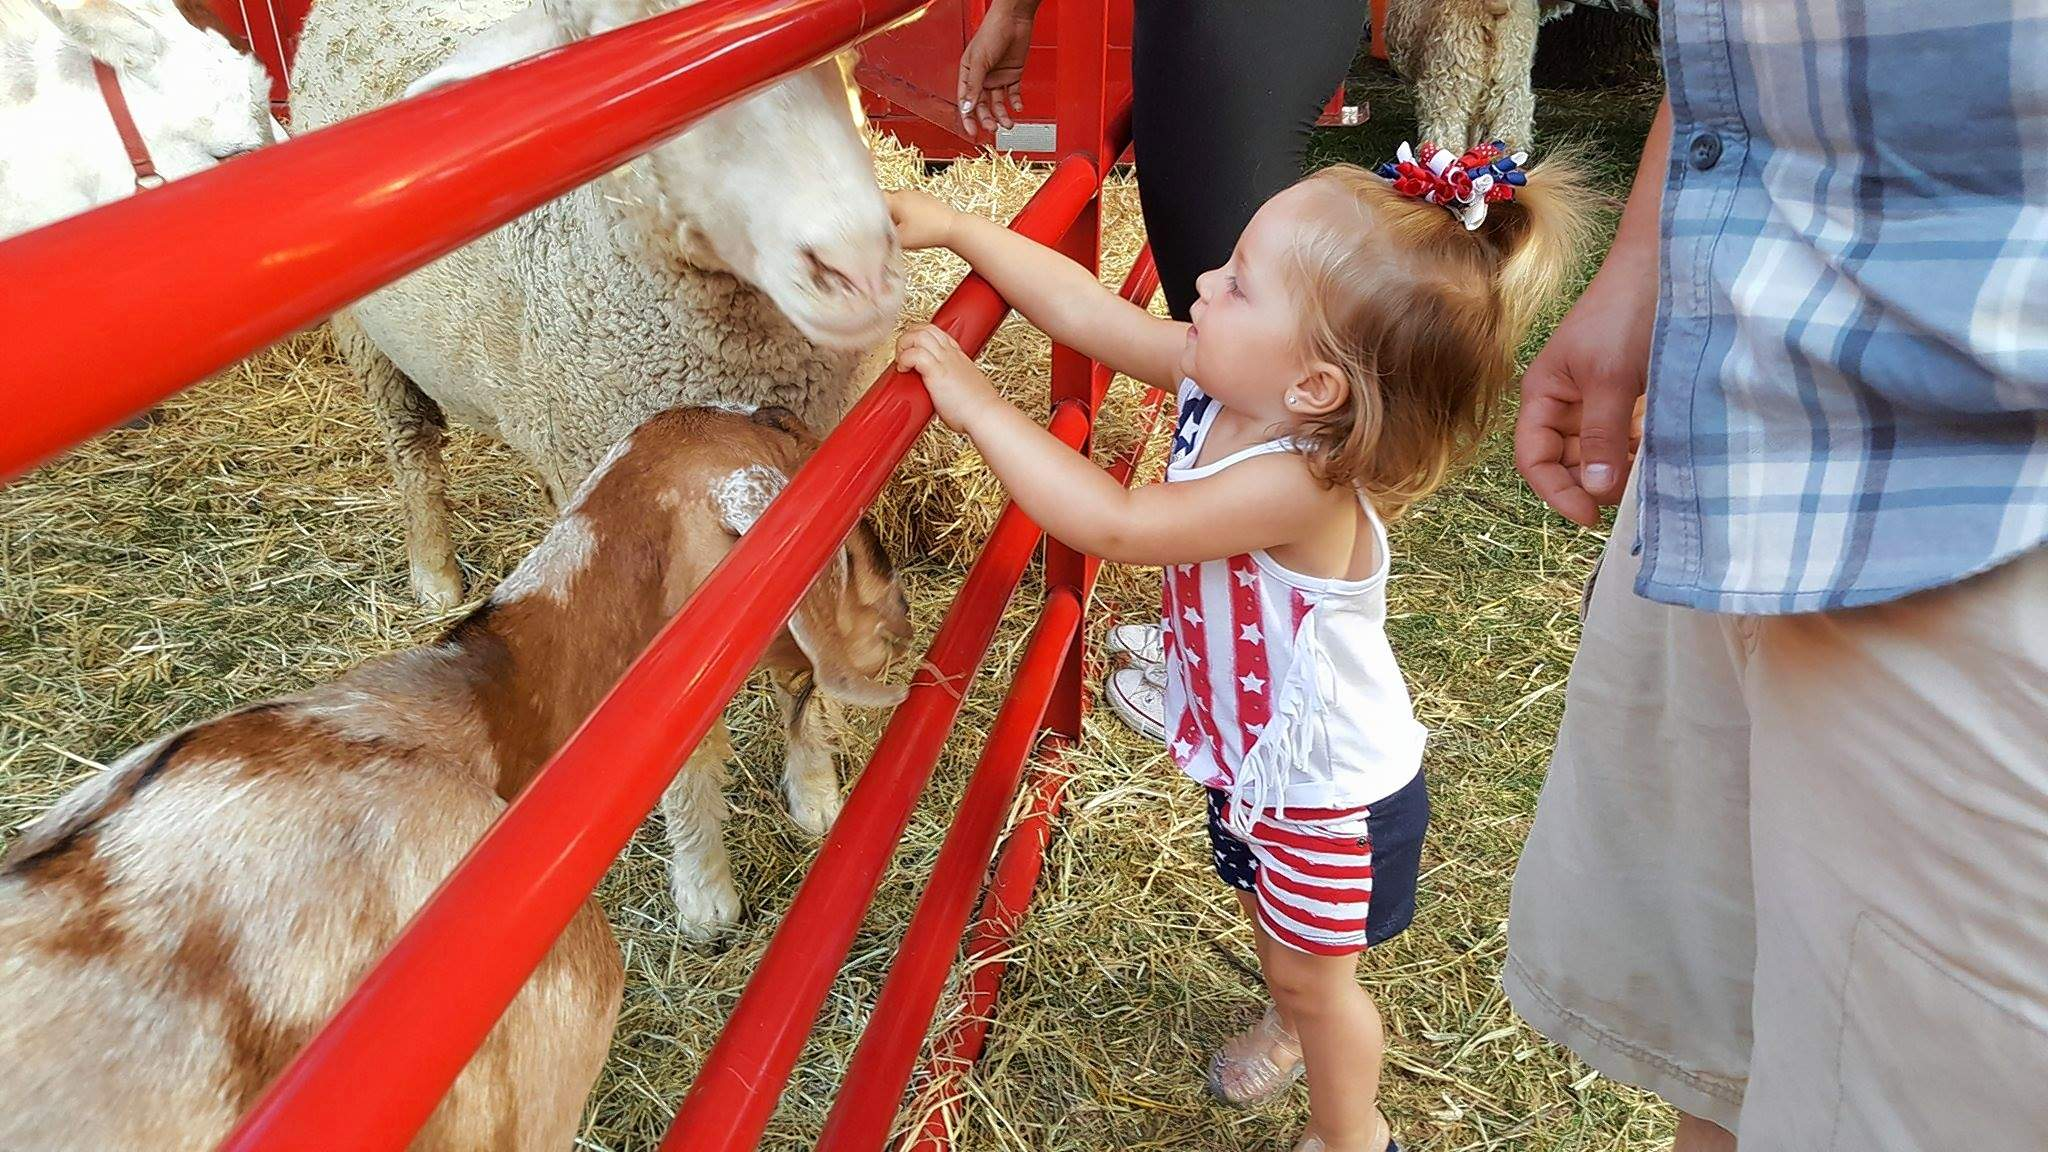 Hayden Snider, 2, of Benton made some new friends at the petting zoo. The Rainbow Ranch Petting Zoo proved to be a favorite, sporting an assortment of animals including goats, sheep and llamas. Hayden's parents are Brandon Snider and Kayla Williams.